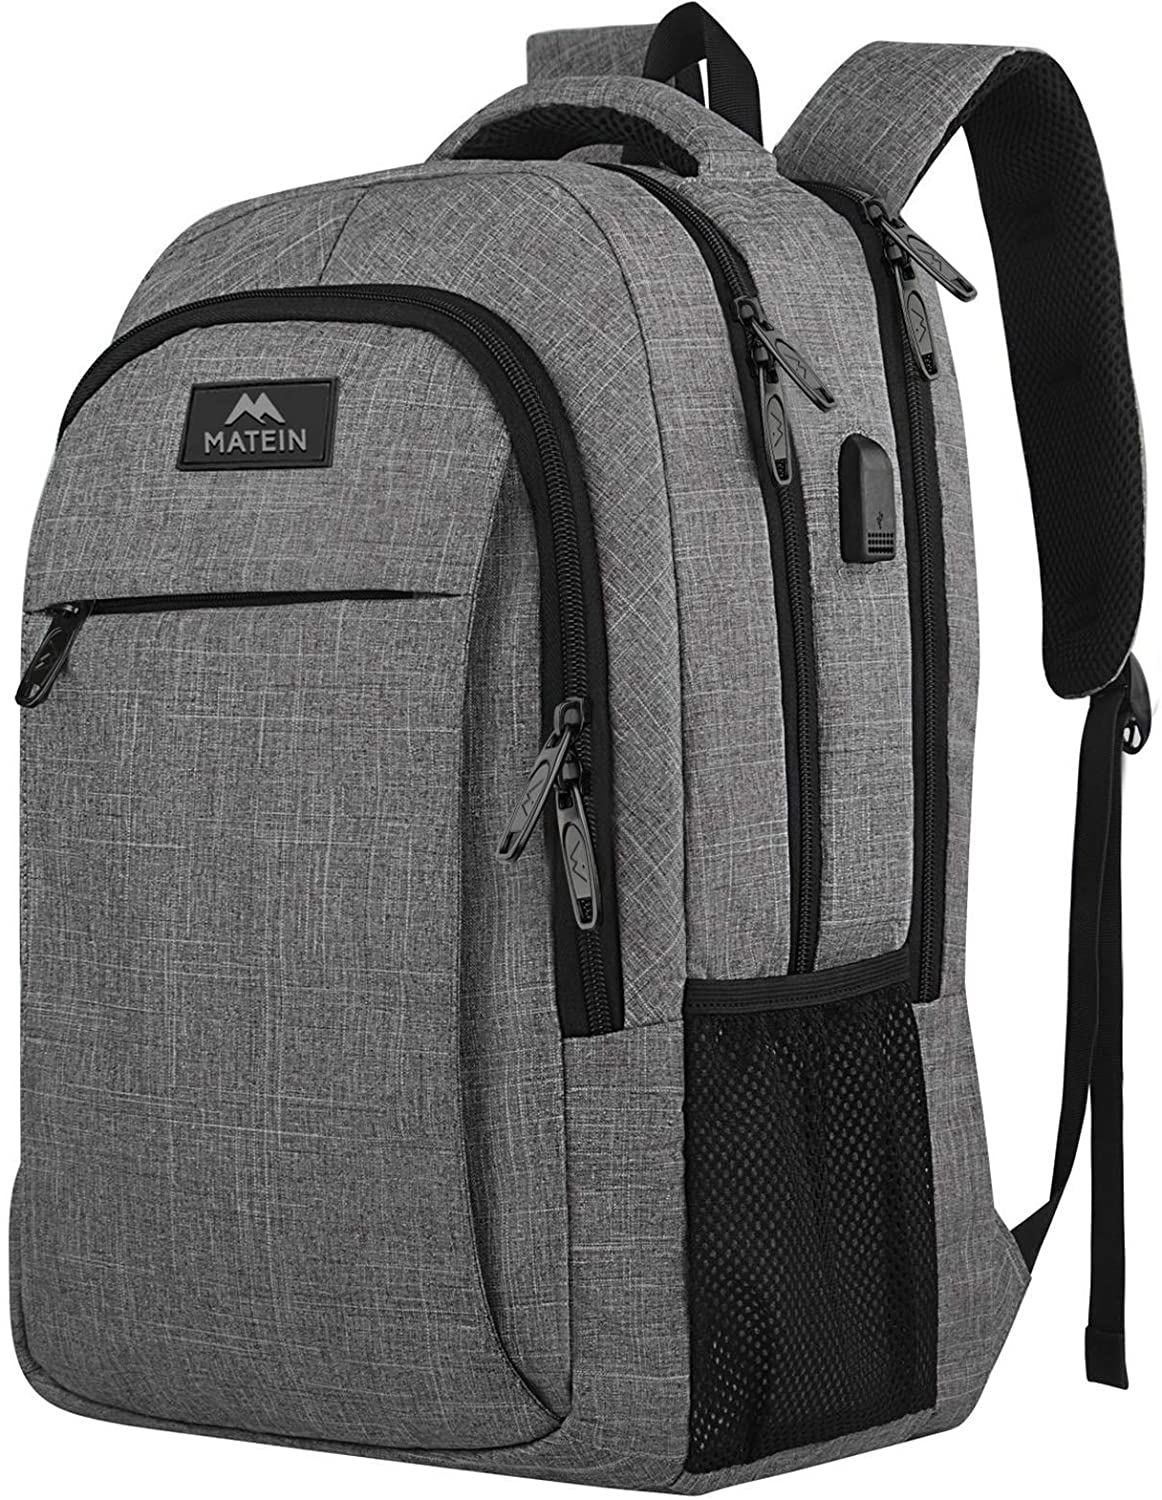 Travel Laptop Backpack - WorkwearToronto.com - Christmas Gift Ideas for him in 2020 - Gifts for men - Amazon